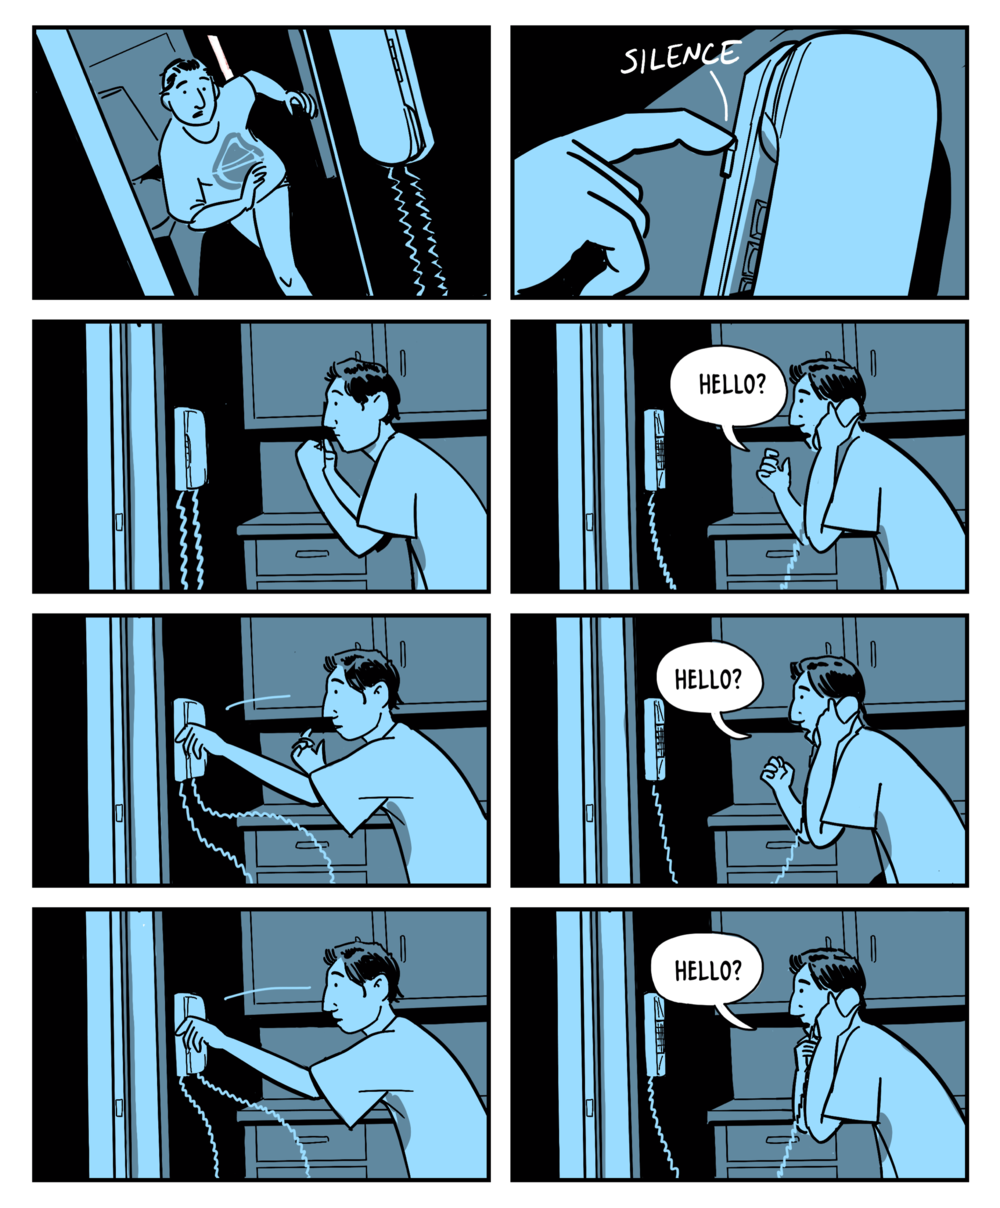 Page-39.png